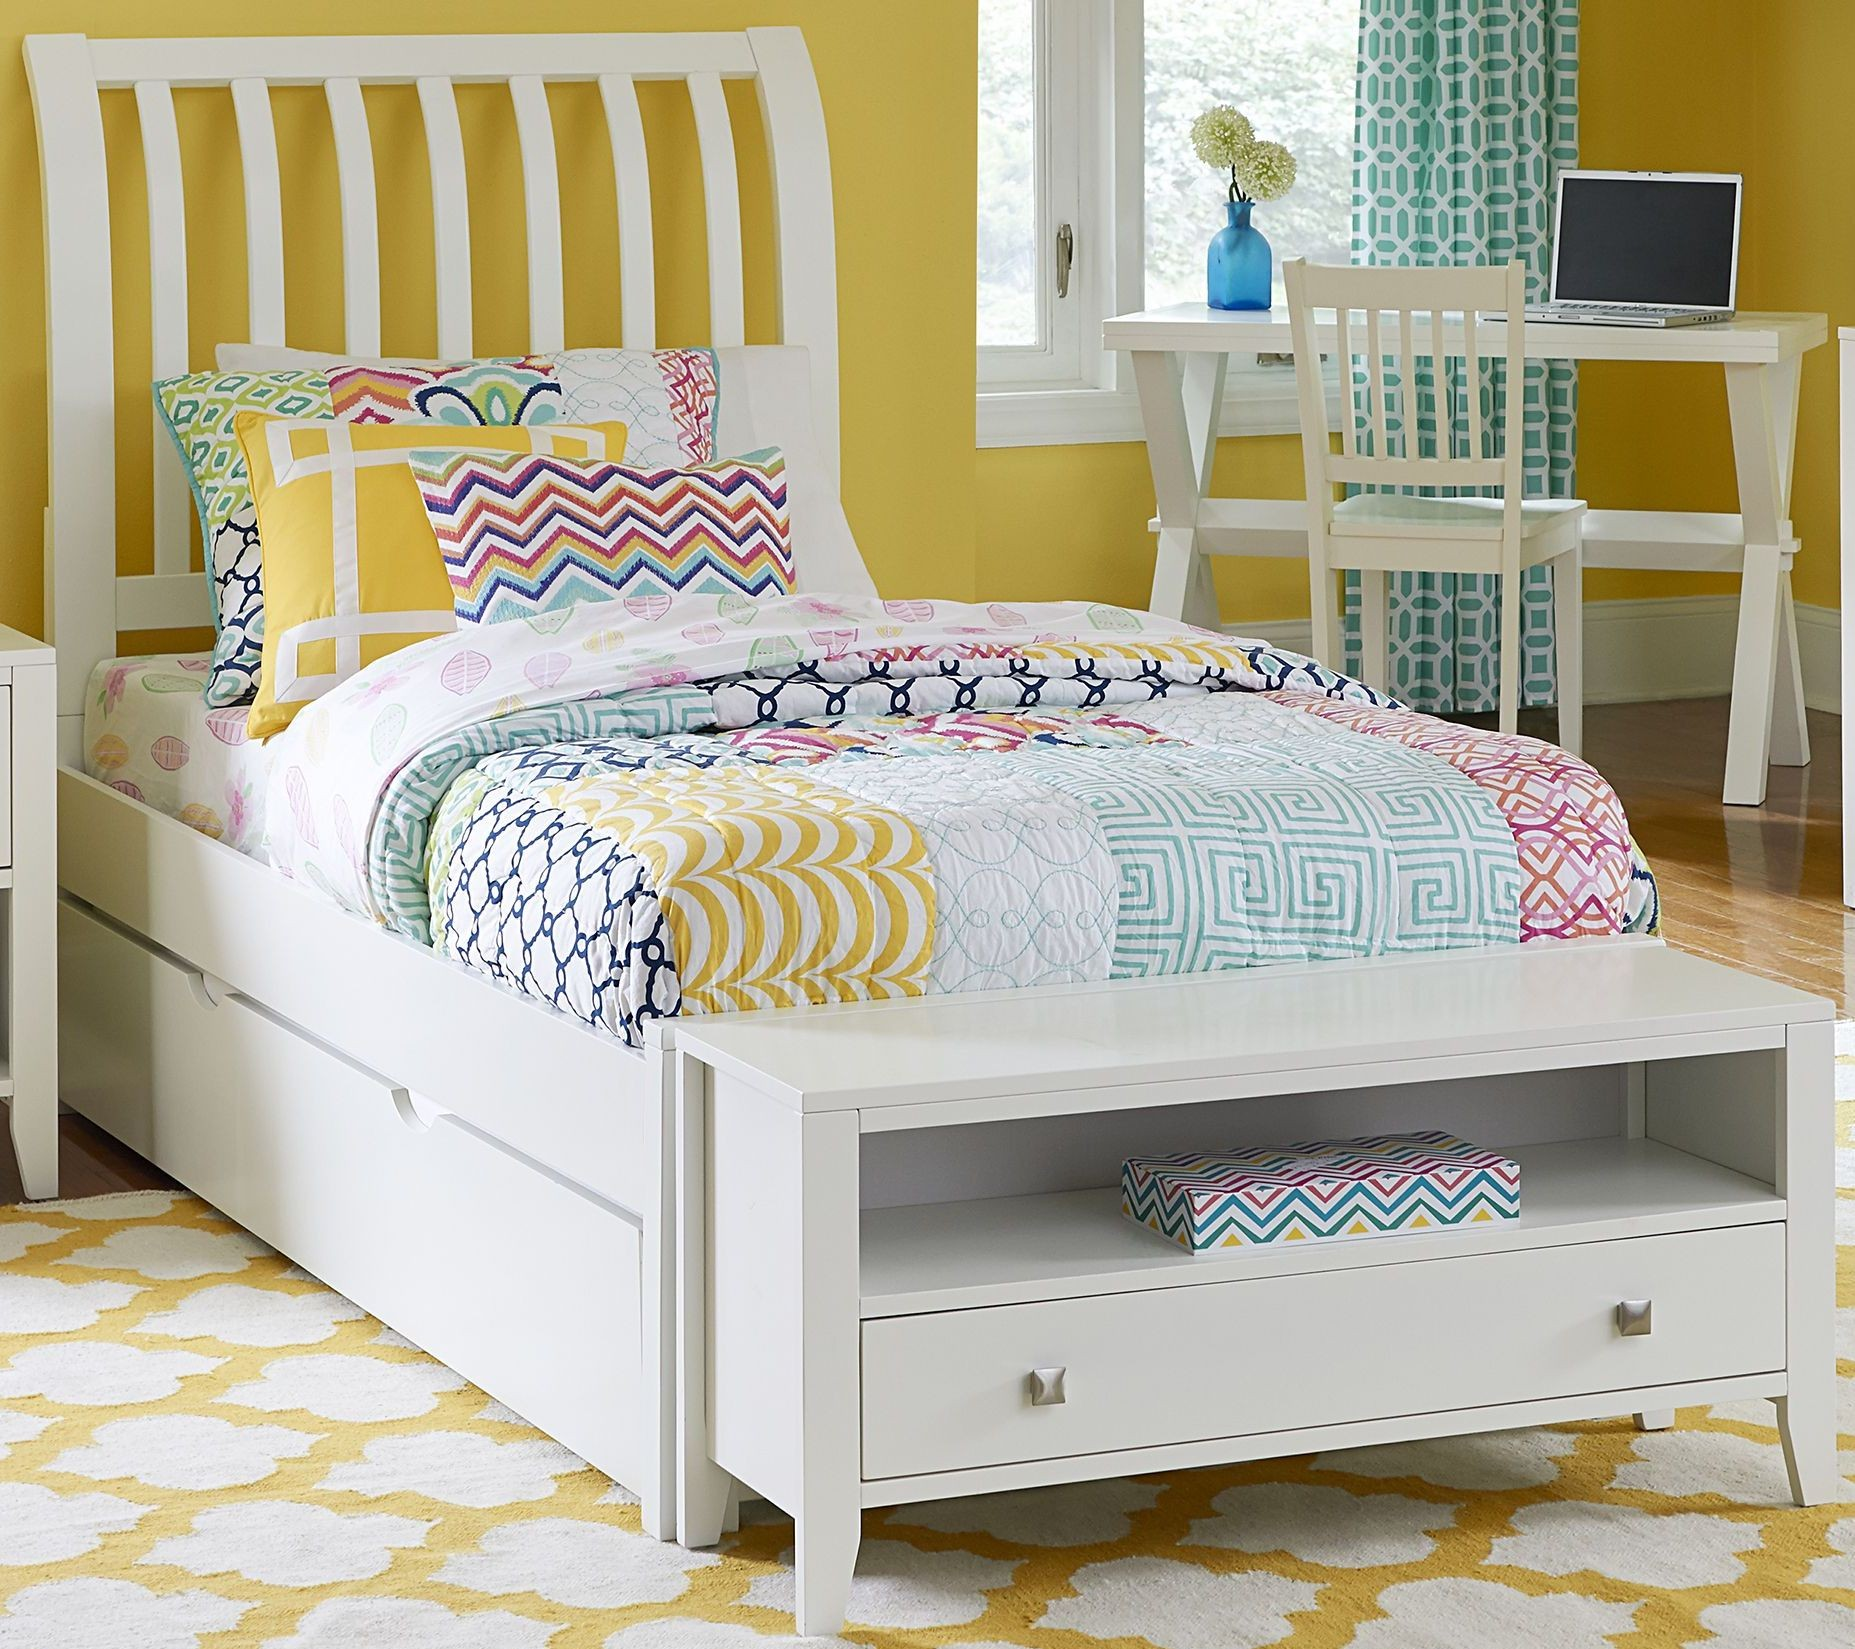 Pulse white rake twin sleigh bed with trundle from ne kids coleman furniture White twin trundle bedroom set